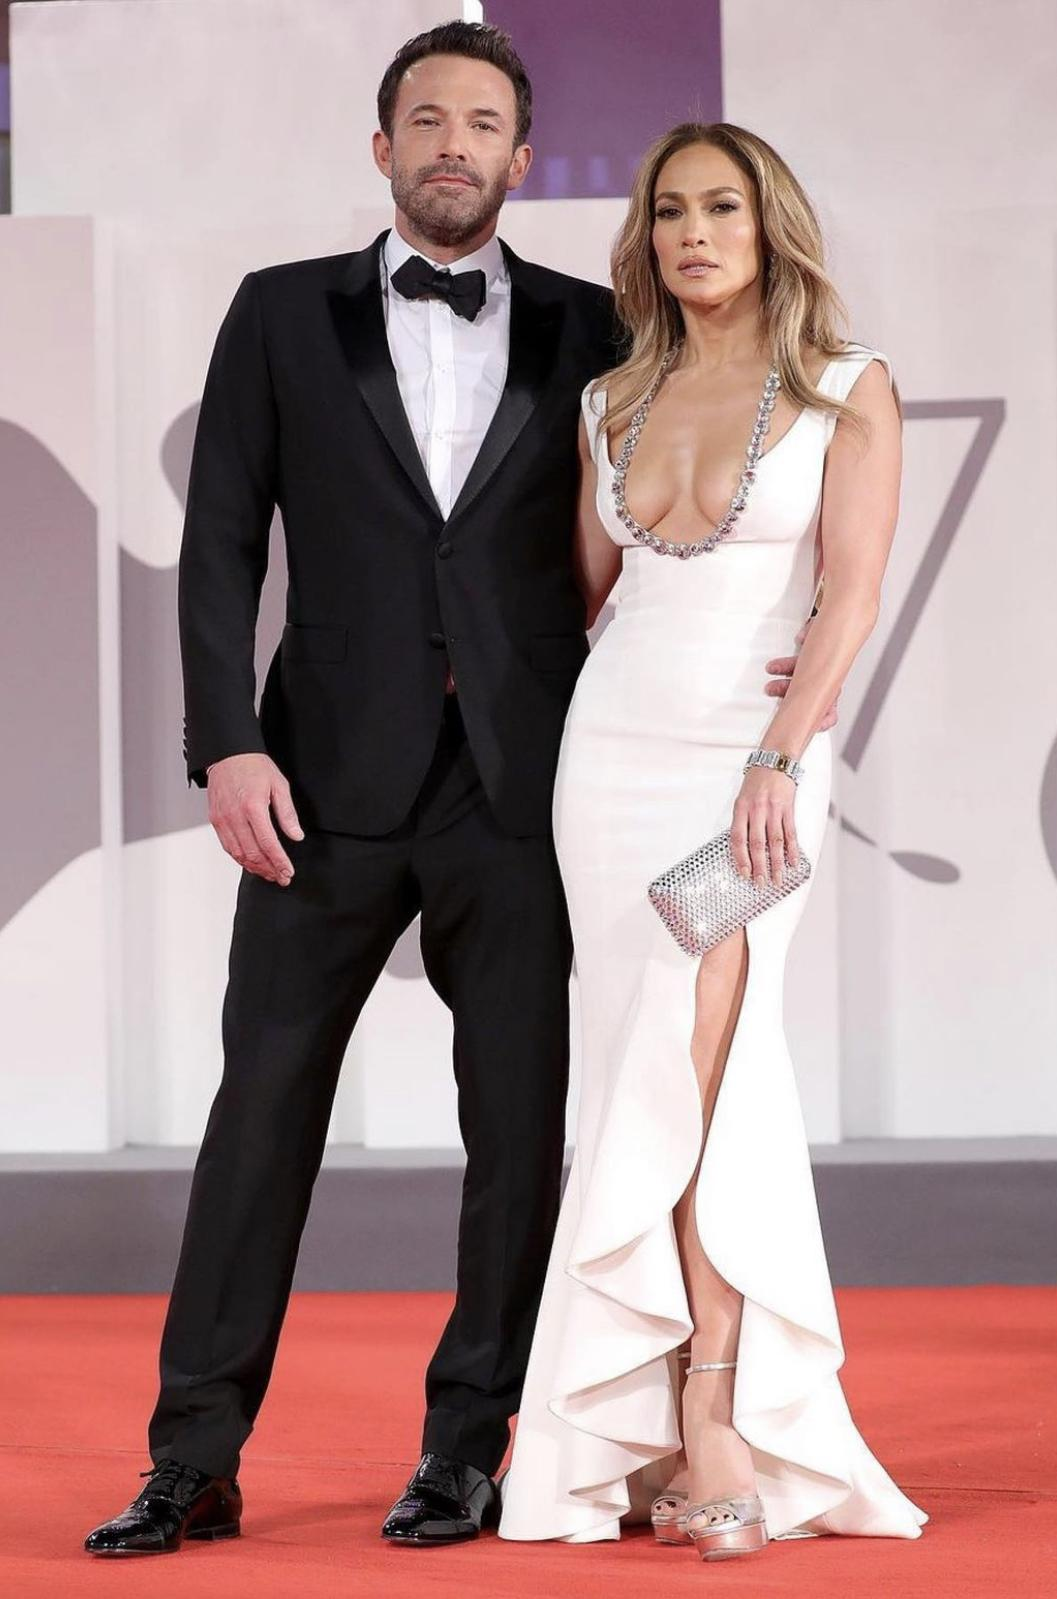 'Bennifer' Shuts Down the Red Carpet at the 2021 Venice Film Festival: Jennifer Lopez Wears Georges Hobeika Fall 2021 Couture Gown and Ben Affleck Wears Dolce and Gabbana Suit